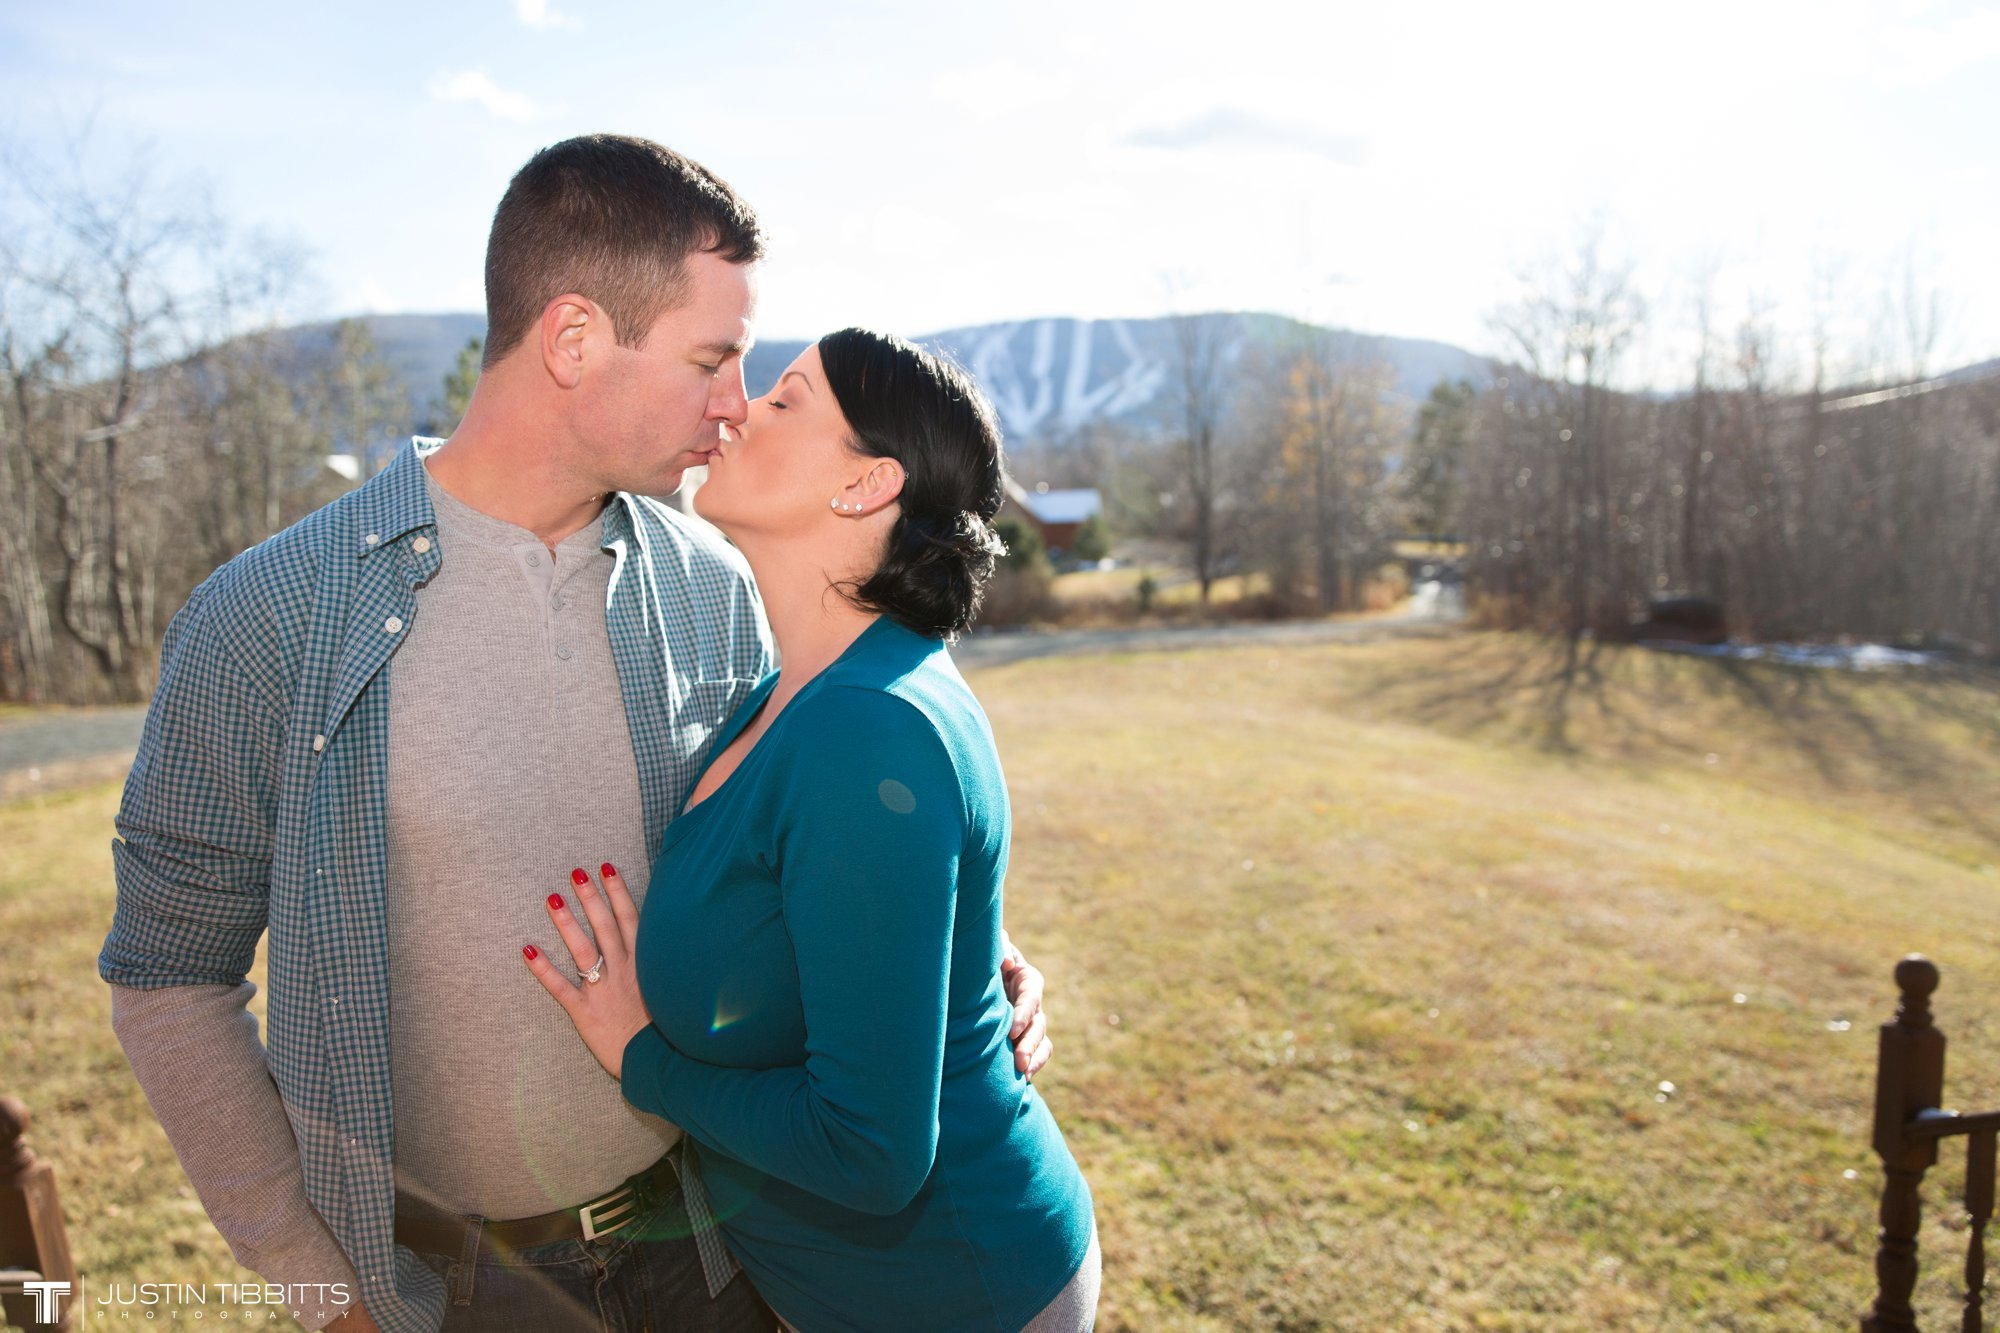 Justin Tibbitts Photography Kristie and Gregs Windham Mountain Resort Engagement Shoot-74